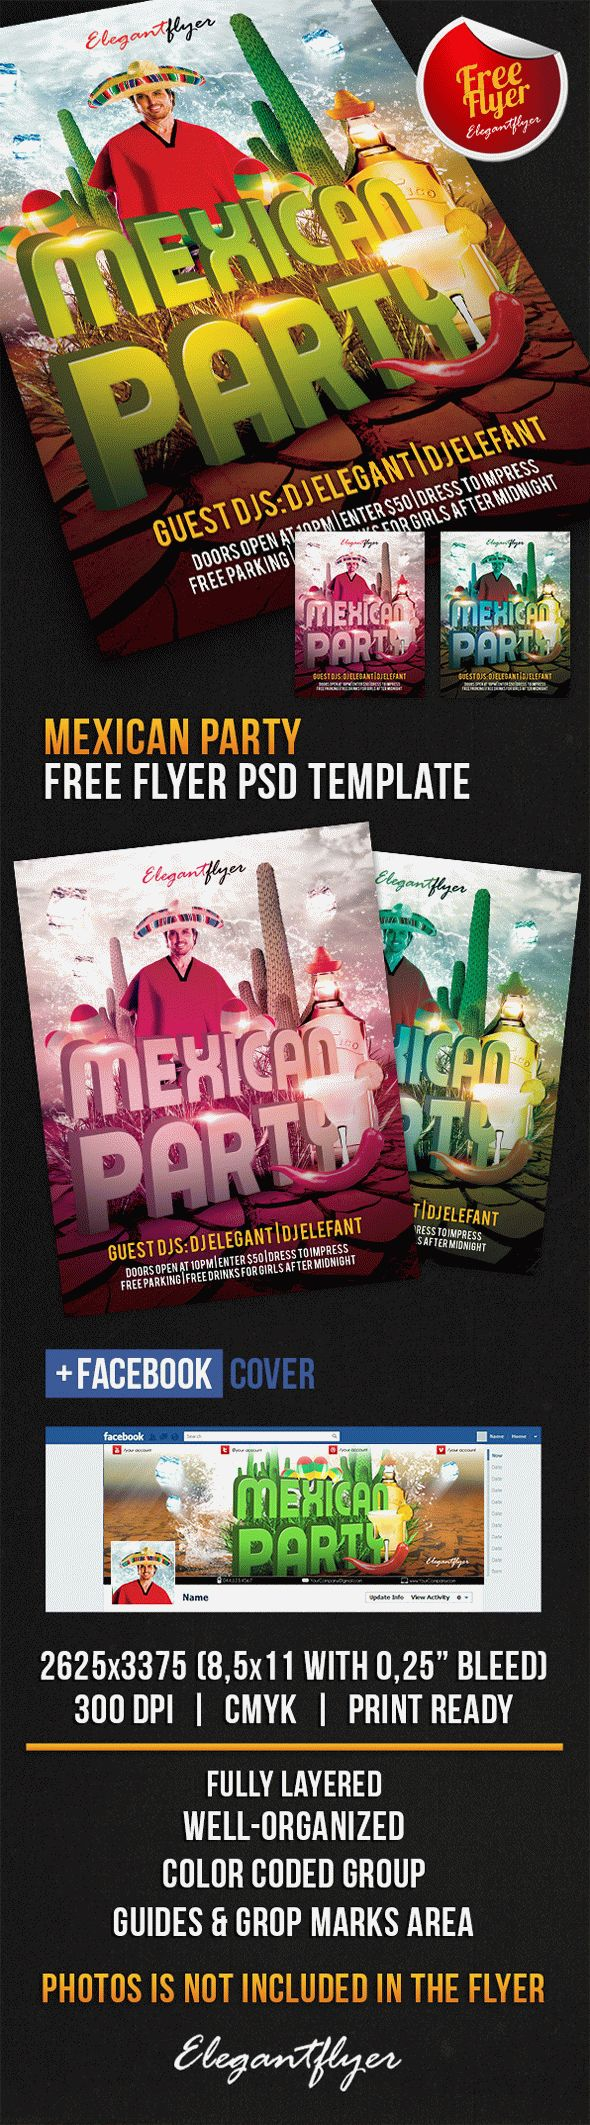 mexican party  u2013 free flyer psd template  u2013 by elegantflyer